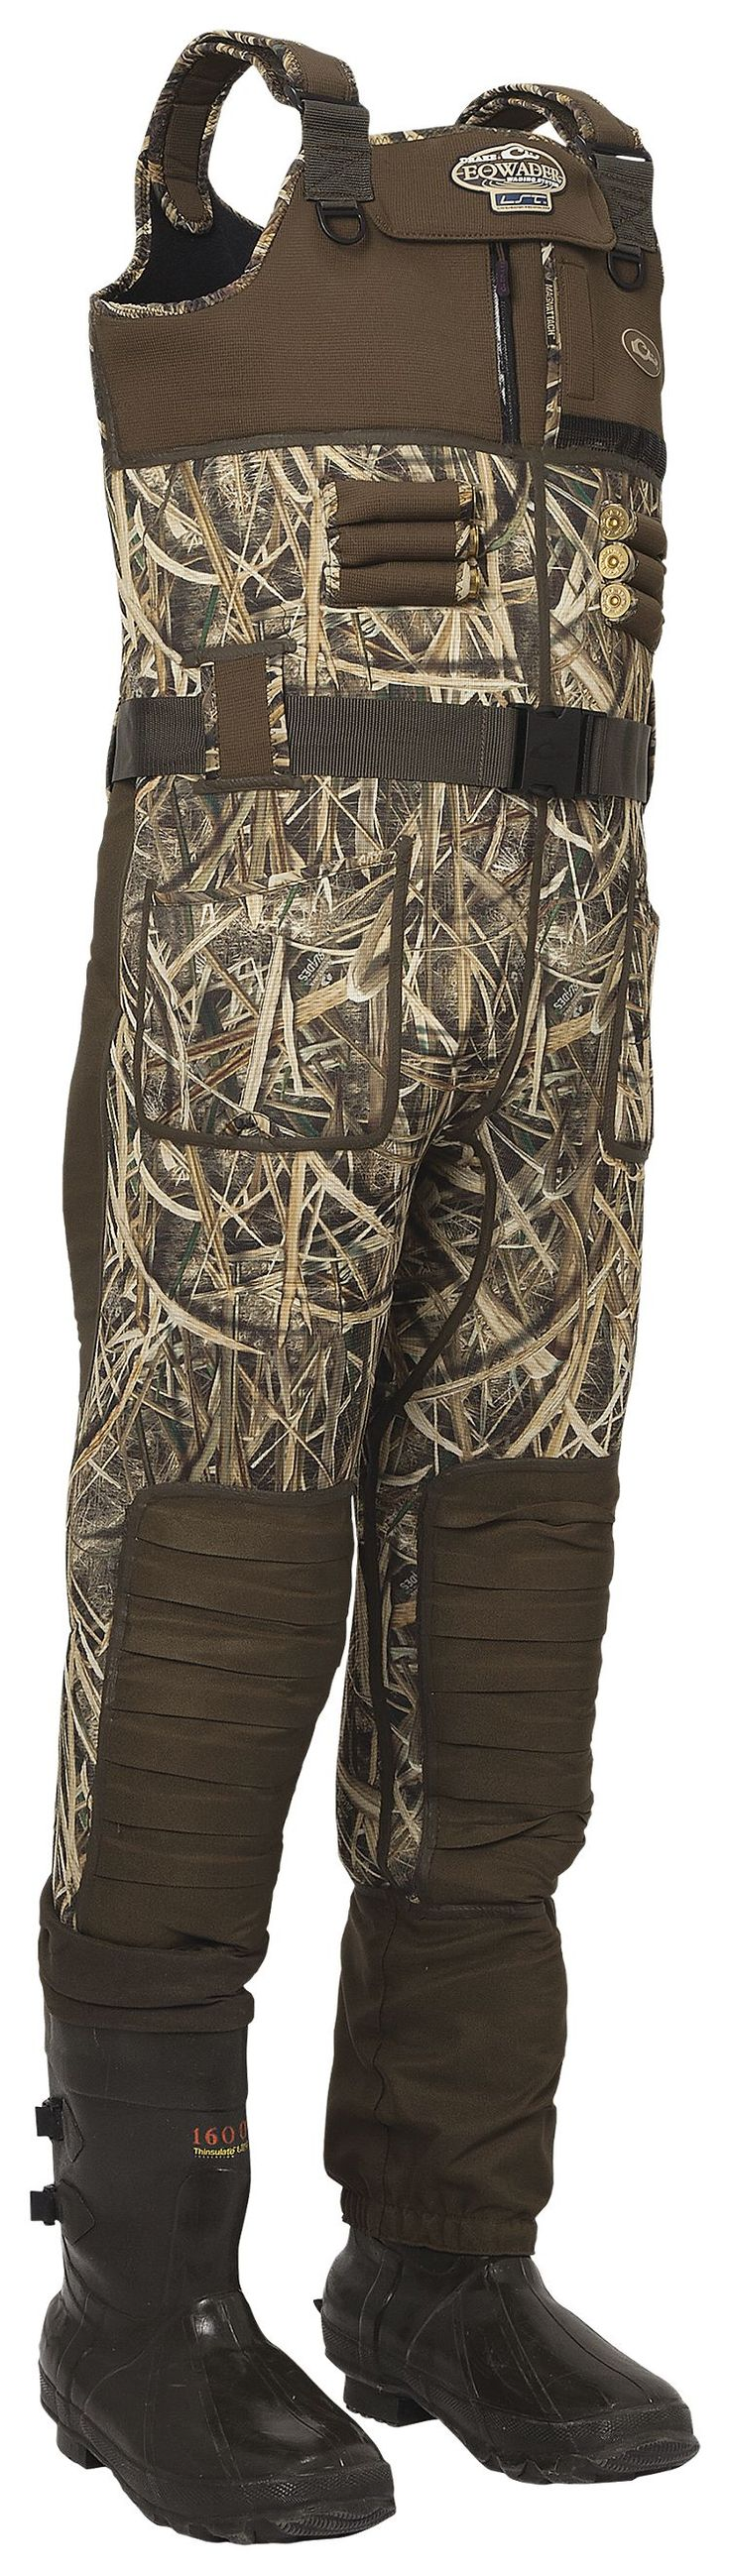 Drake Waterfowl Systems LST Eqwader 2.0 Bootfoot Waders for Men - Mossy Oak Shadow Grass Blades | Bass Pro Shops: The Best Hunting, Fishing, Camping & Outdoor Gear